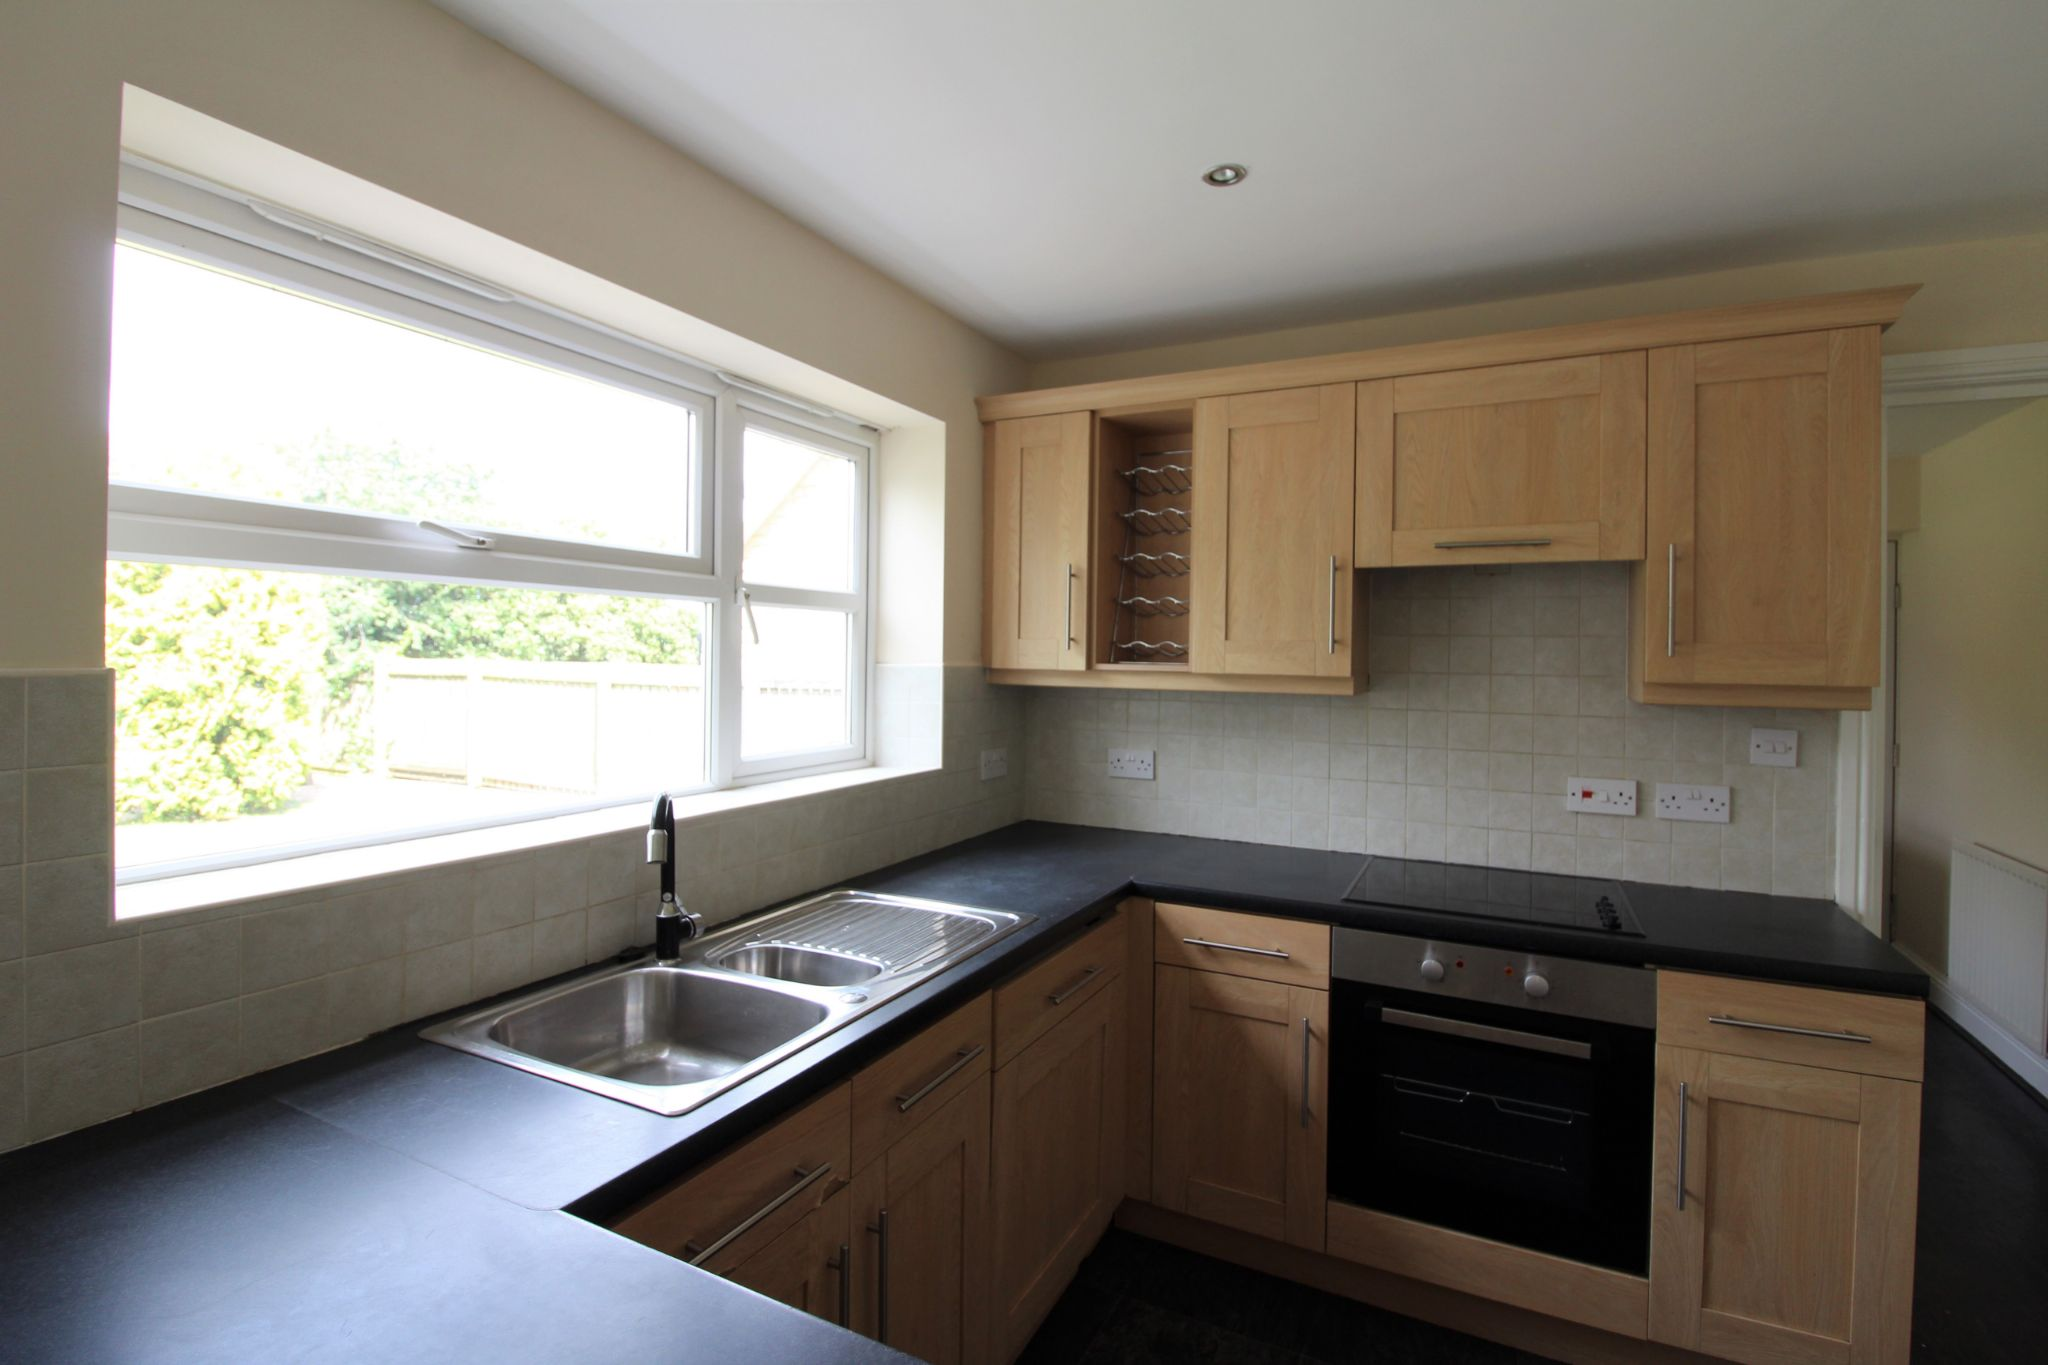 7 bedroom detached house Sale Agreed in Sunniside - Photograph 46.